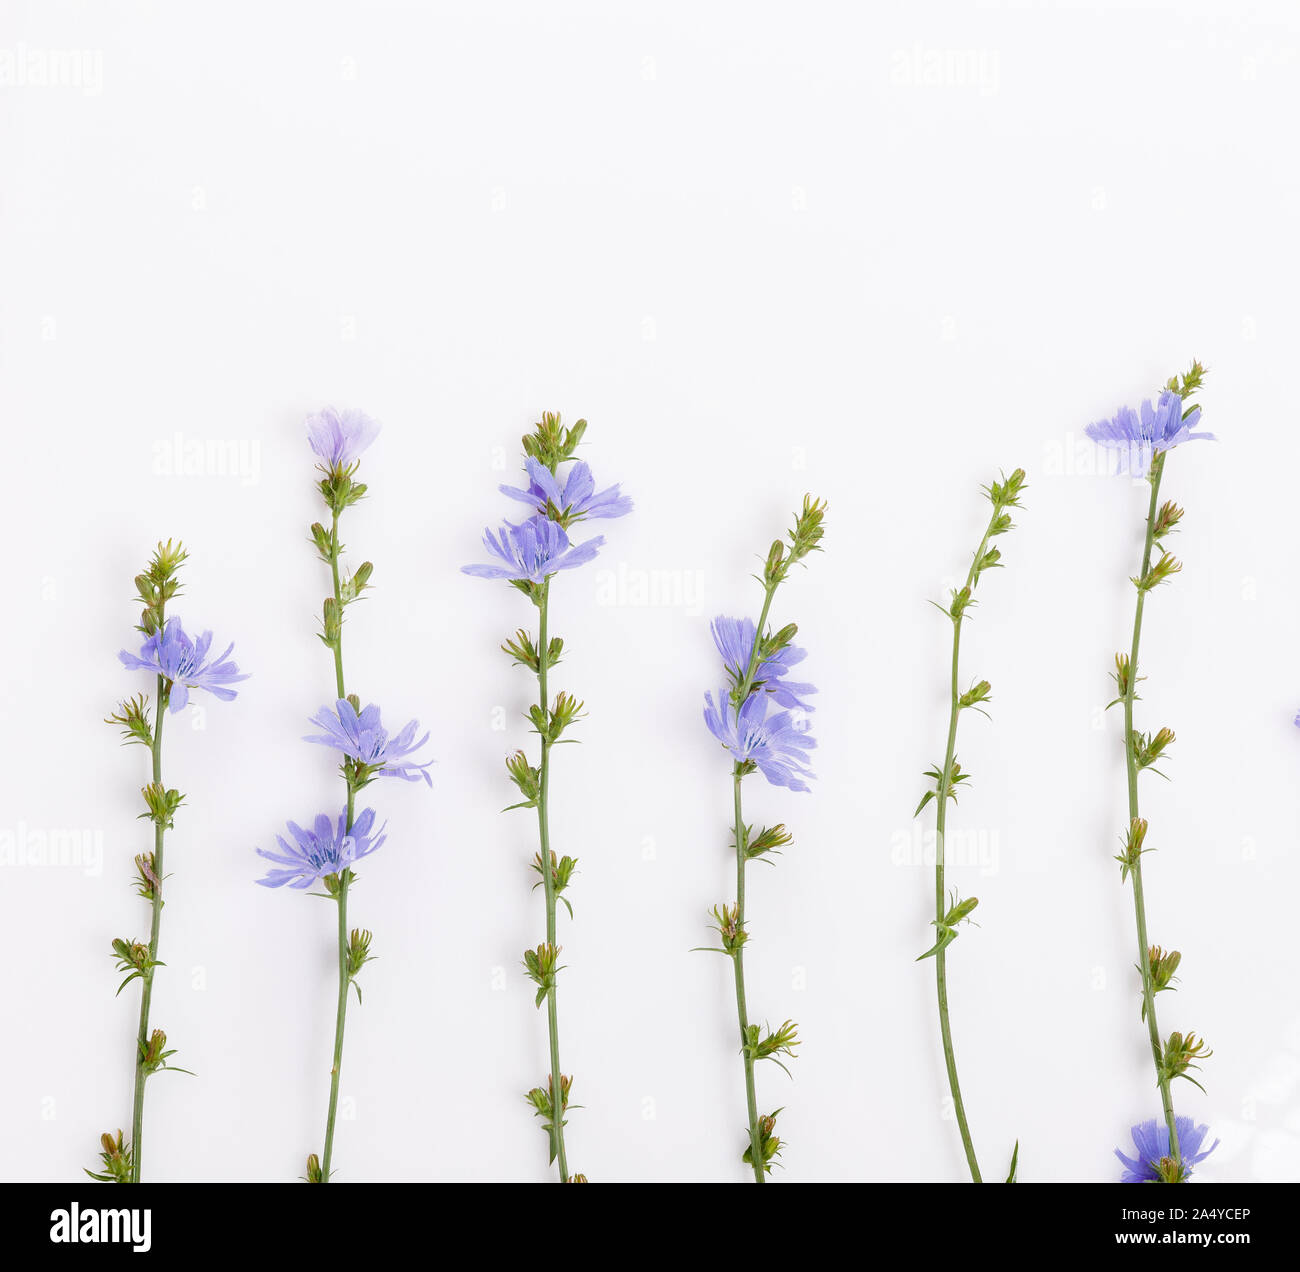 Cichorium intybus - common chicory flowers isolated on the white background Stock Photo